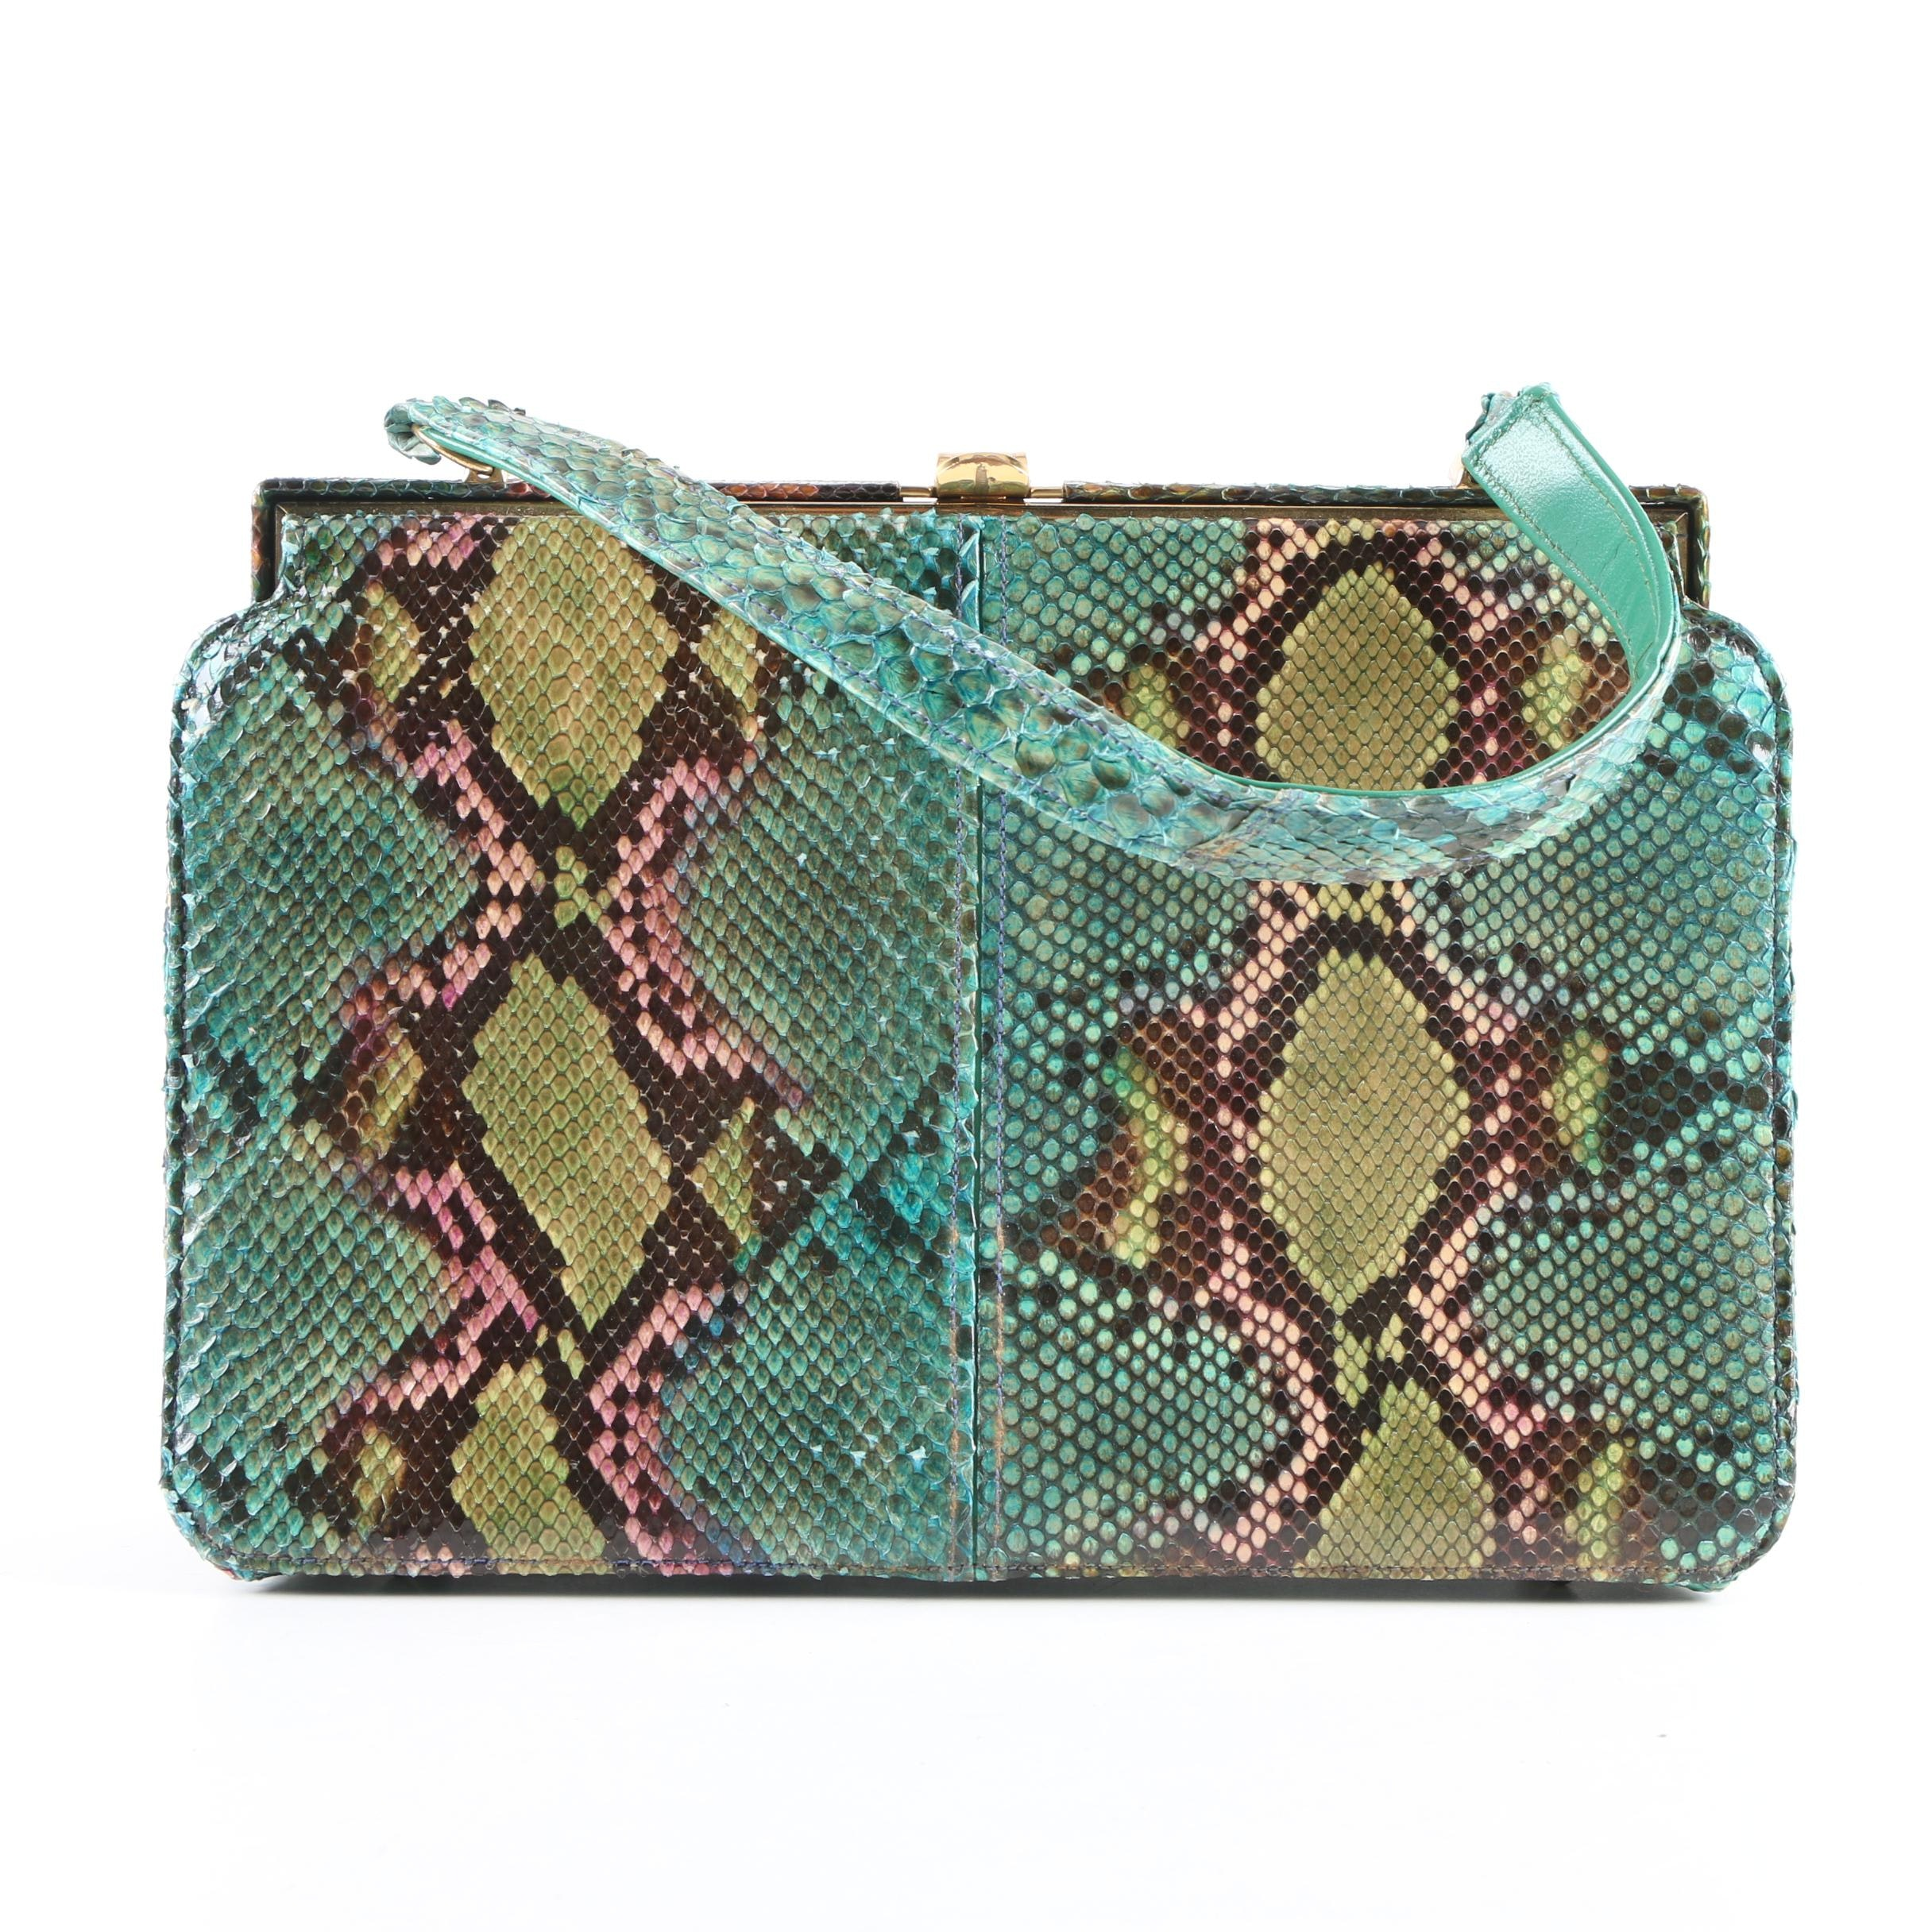 Vintage Sydney of California Multicolored Python Skin Handbag